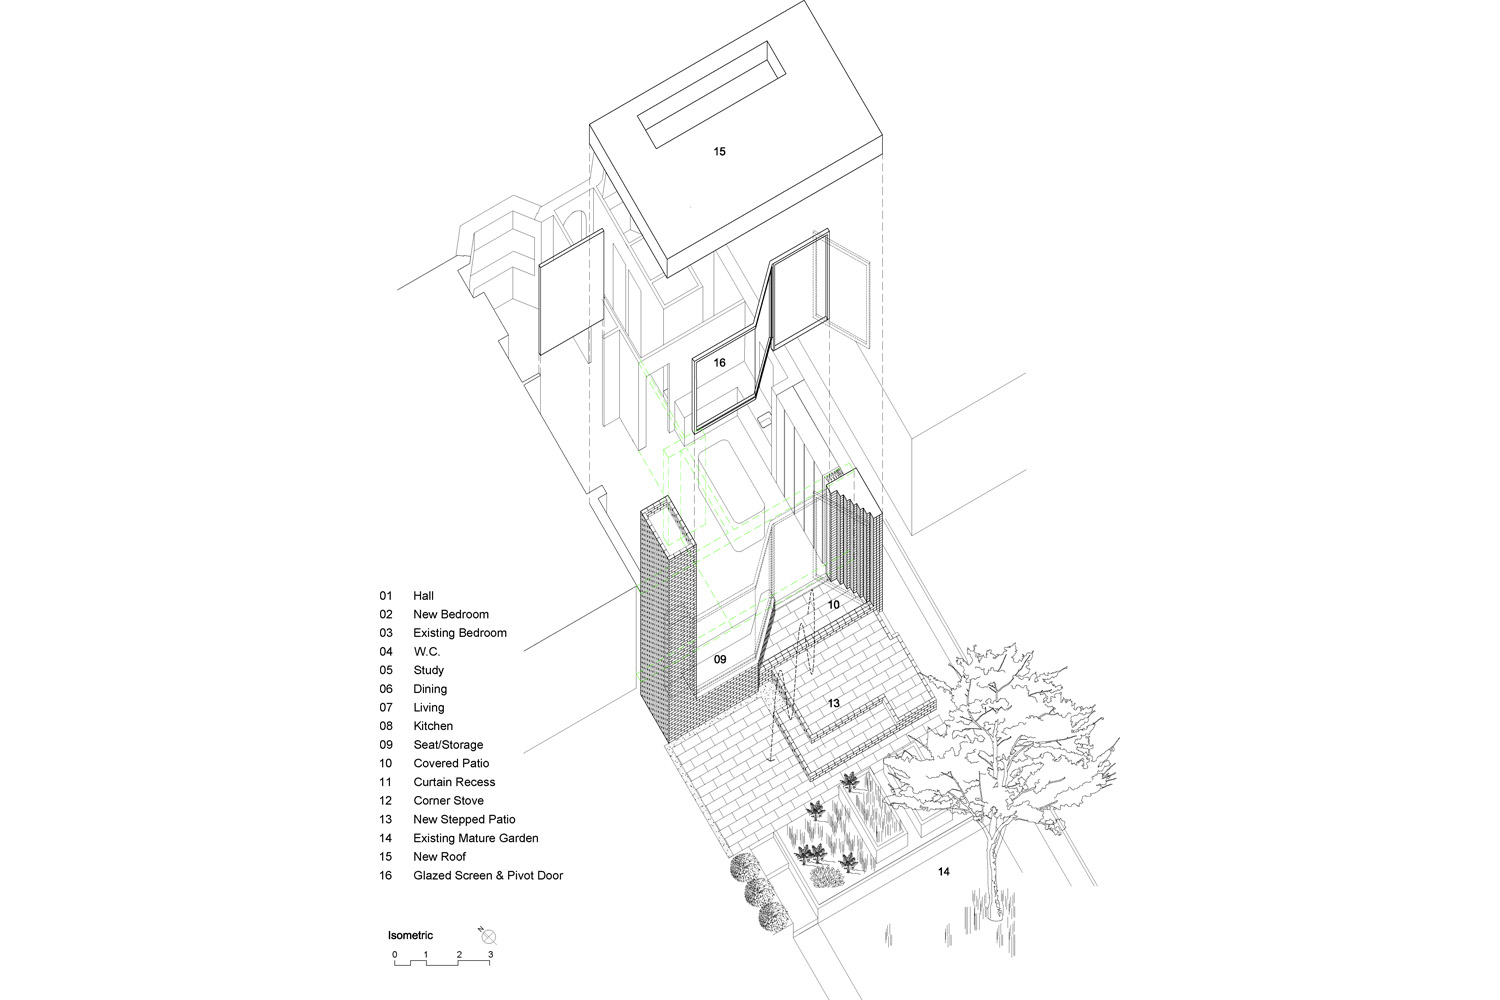 Generation Gain Architectural Farm ISO